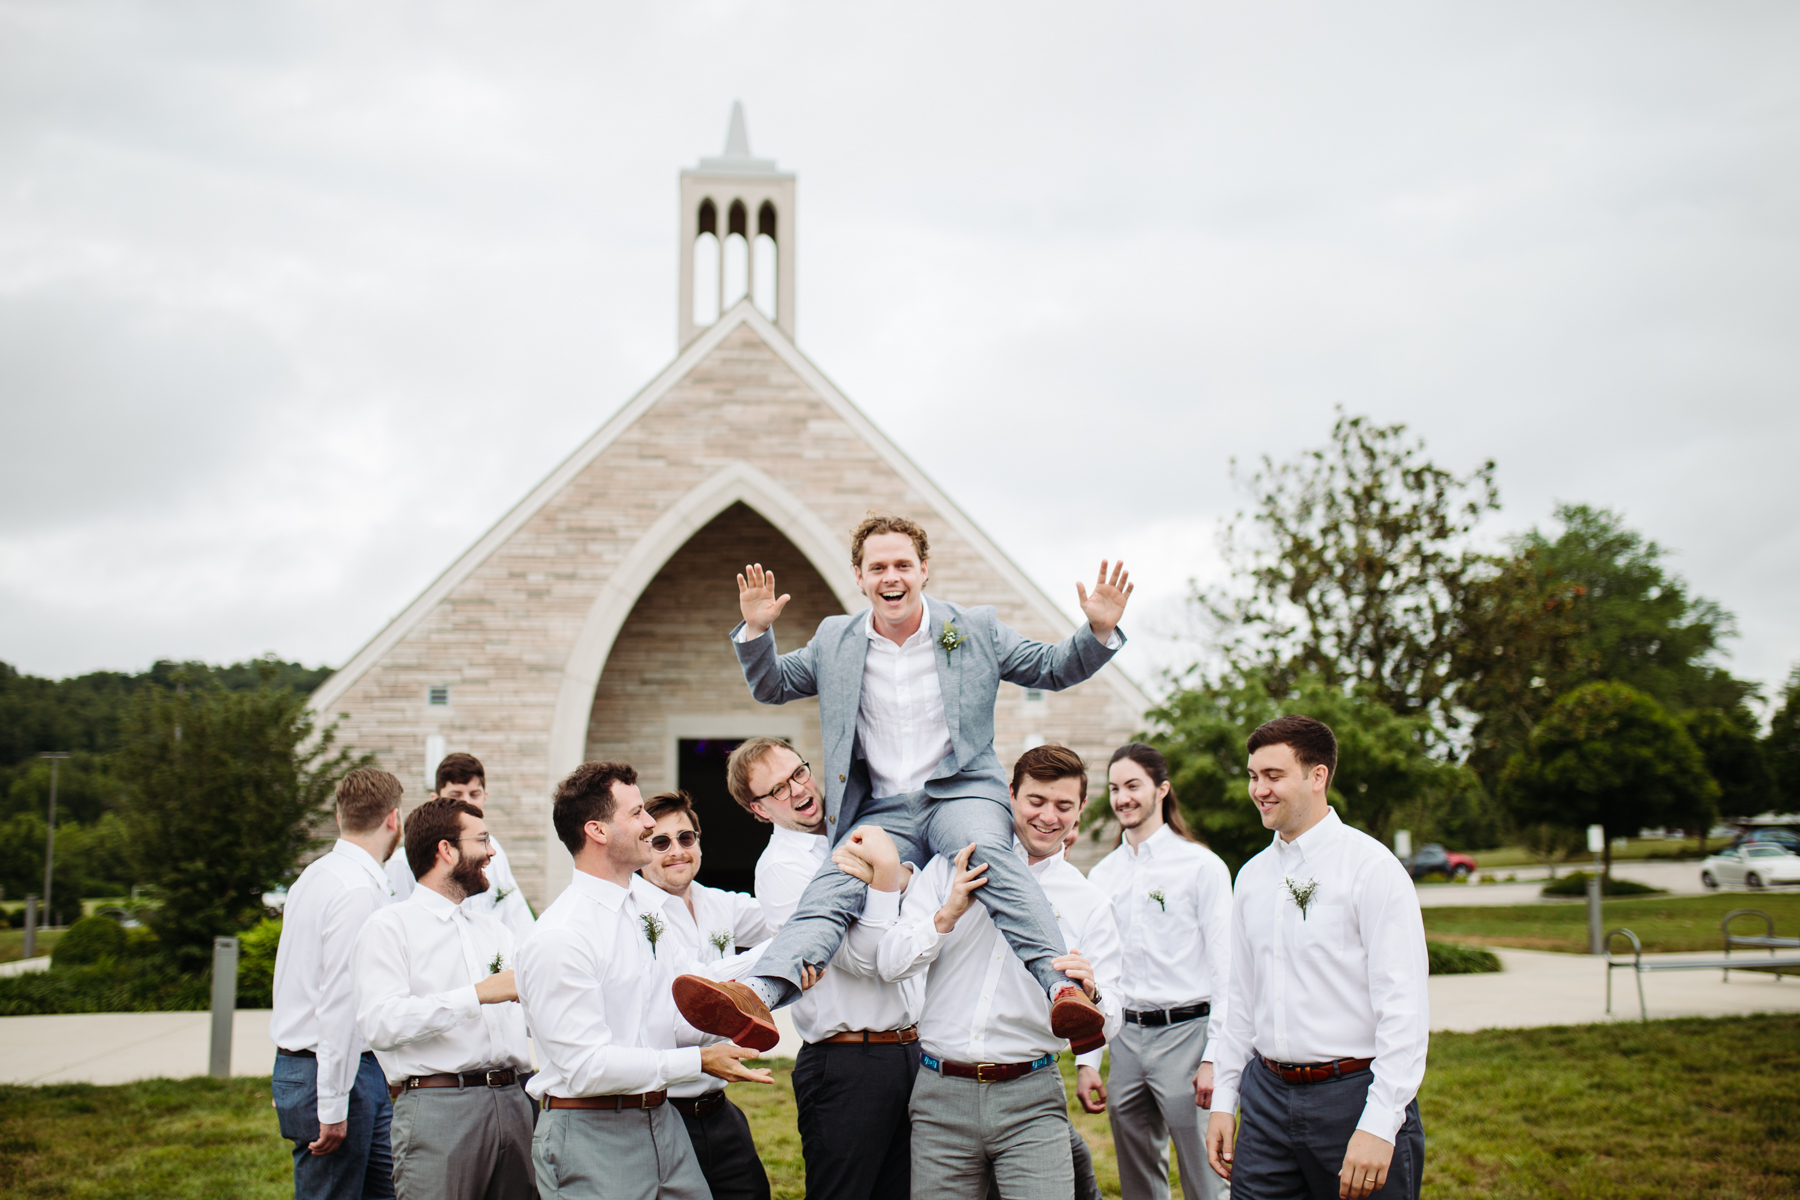 Groom and groomsmen photos at Lakeshore Chapel before a downtown knoxville wedding at redeemer church